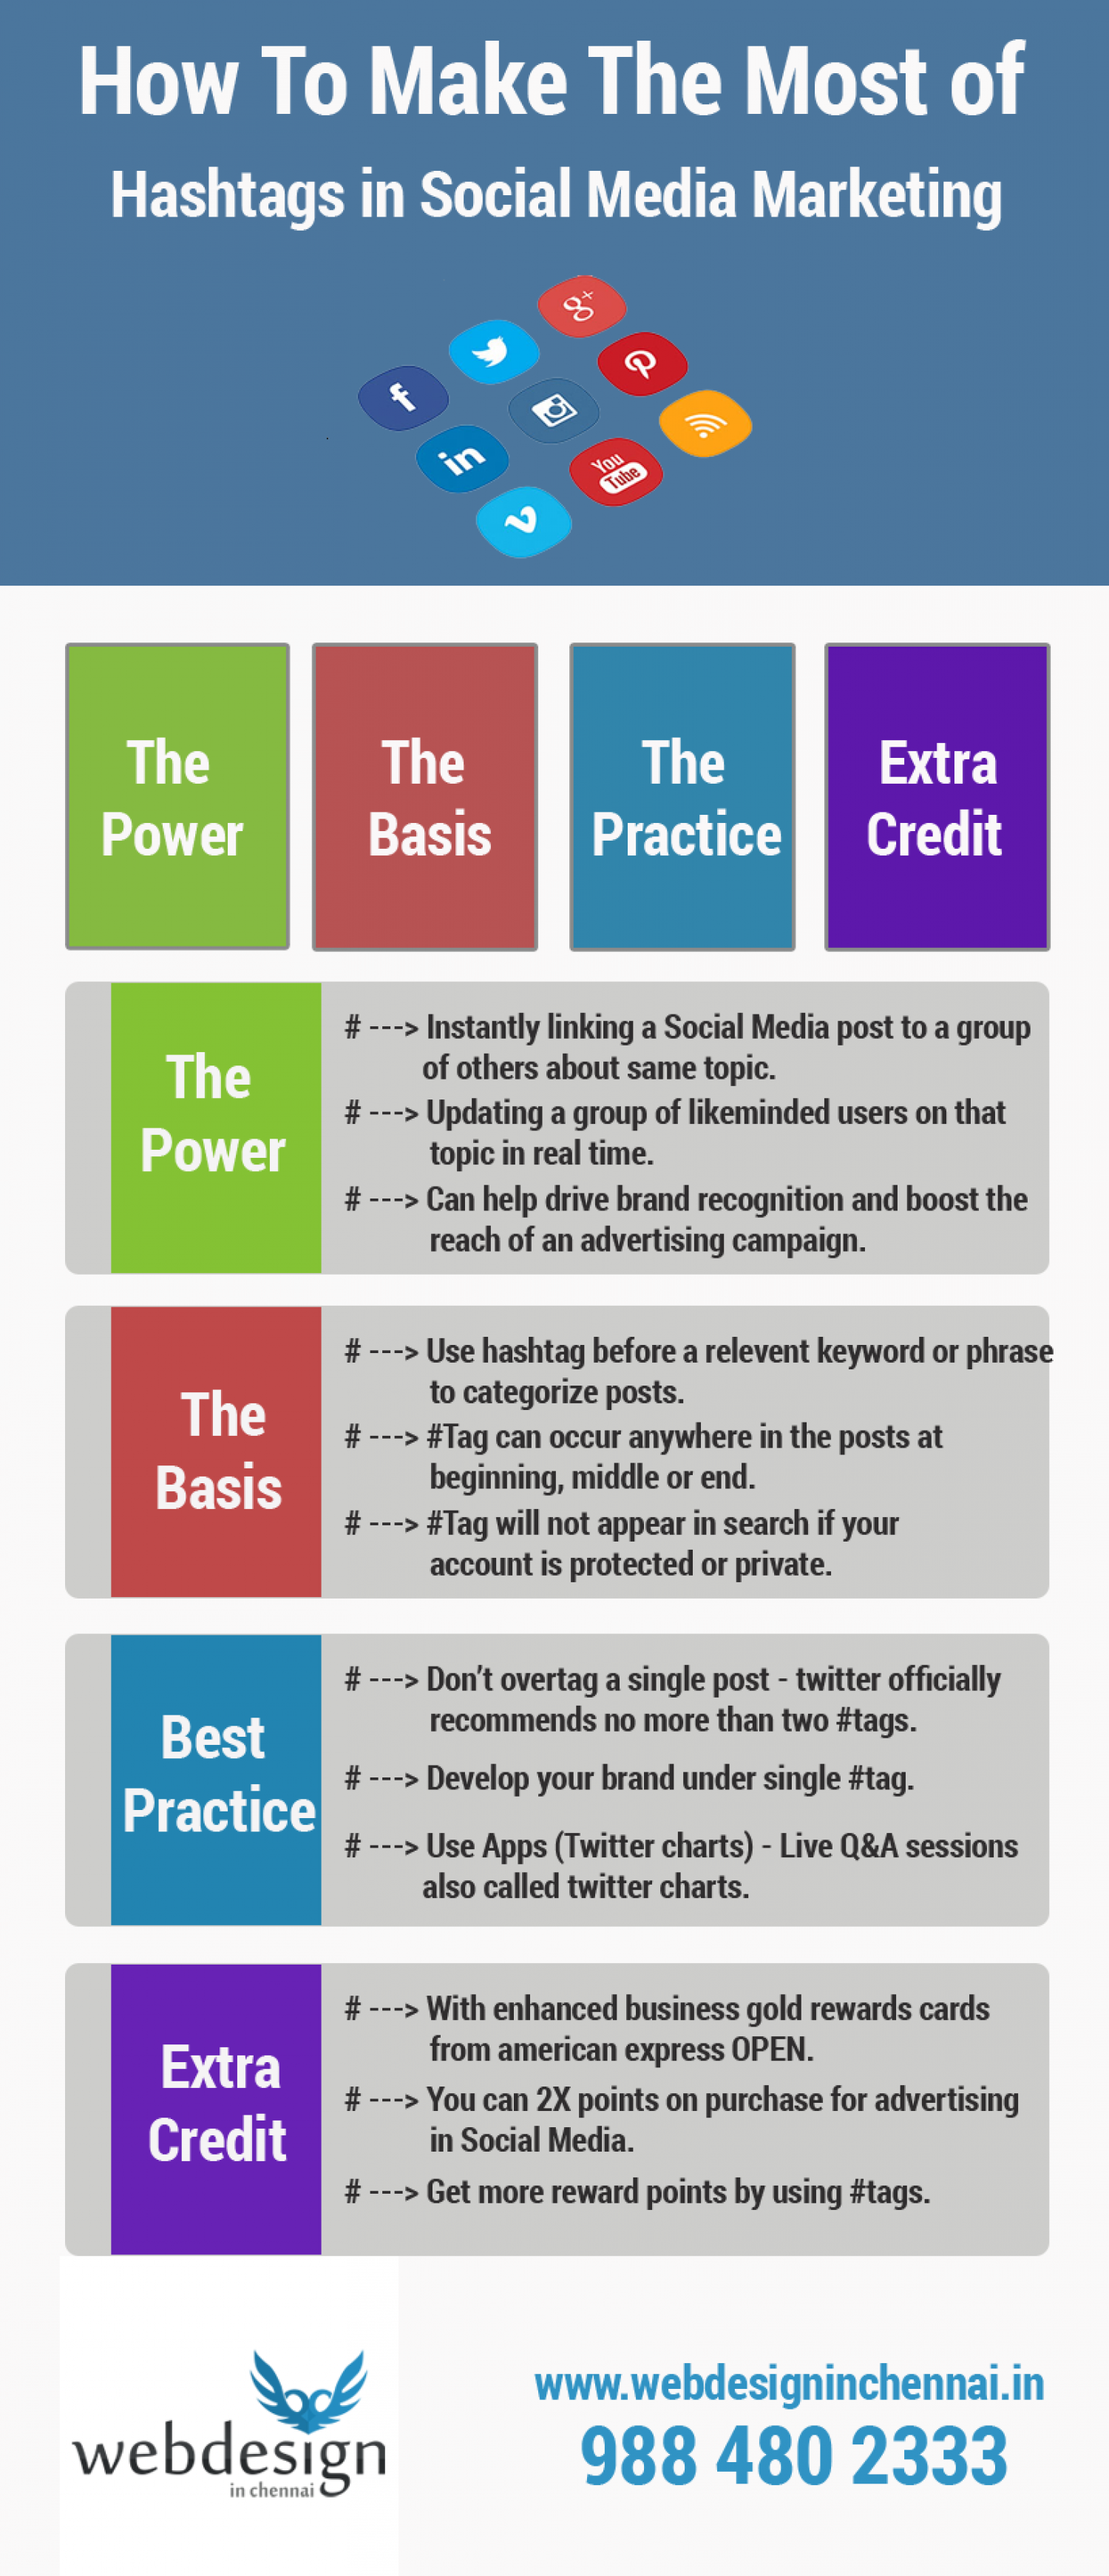 How to Make the Most of Hashtags in Social Media Marketing Infographic